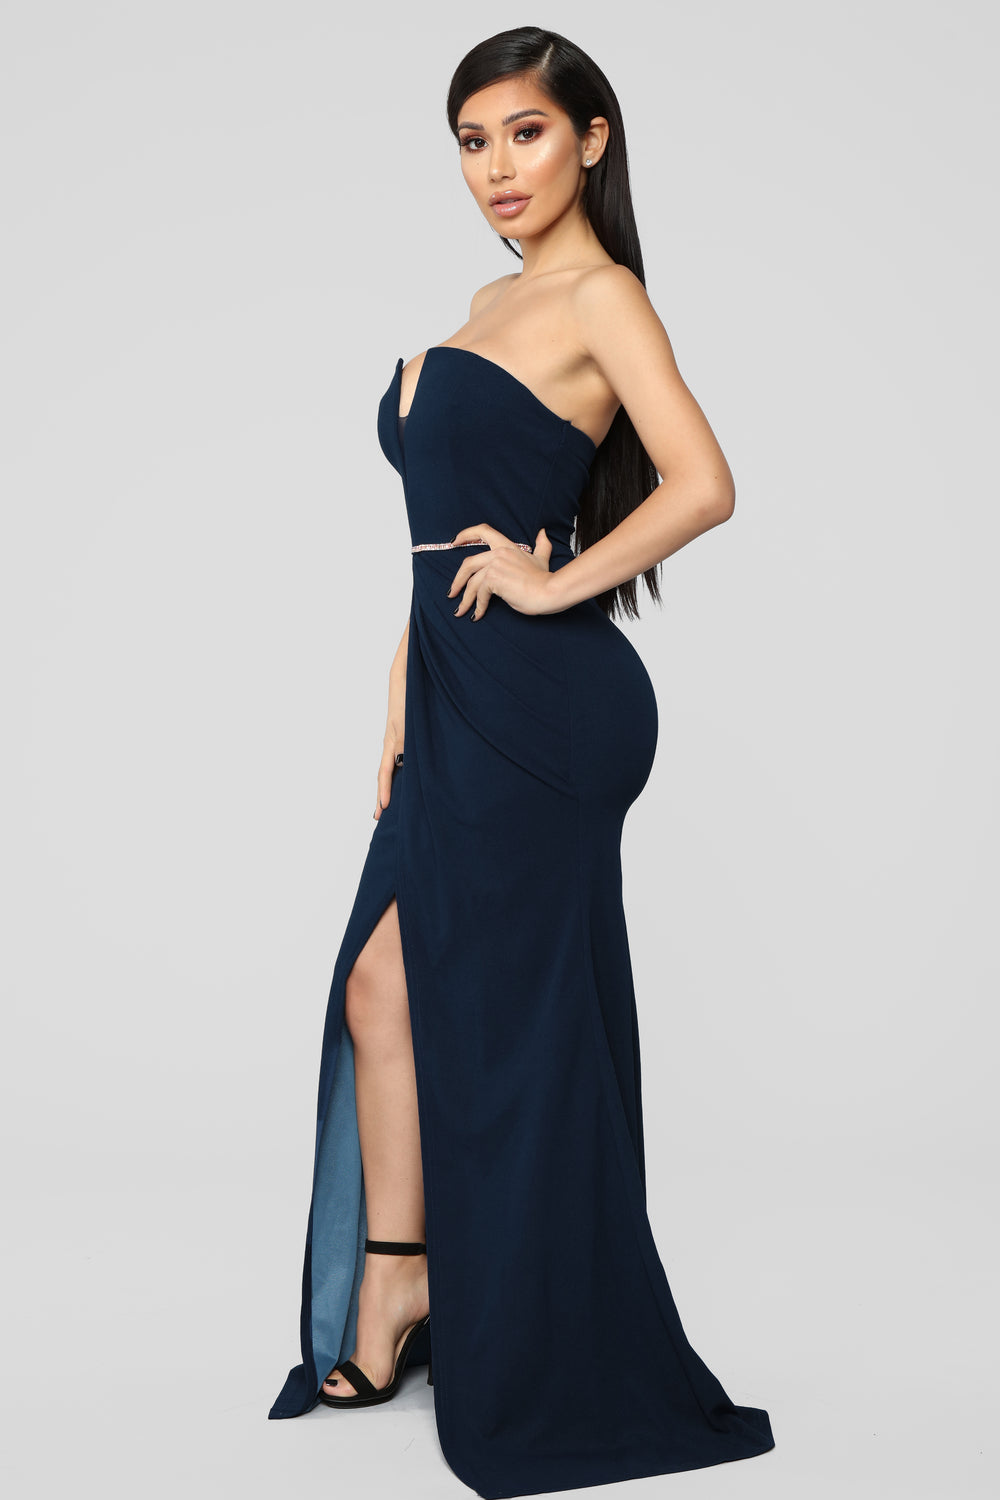 Taking Chances High Slit Gown - Teal